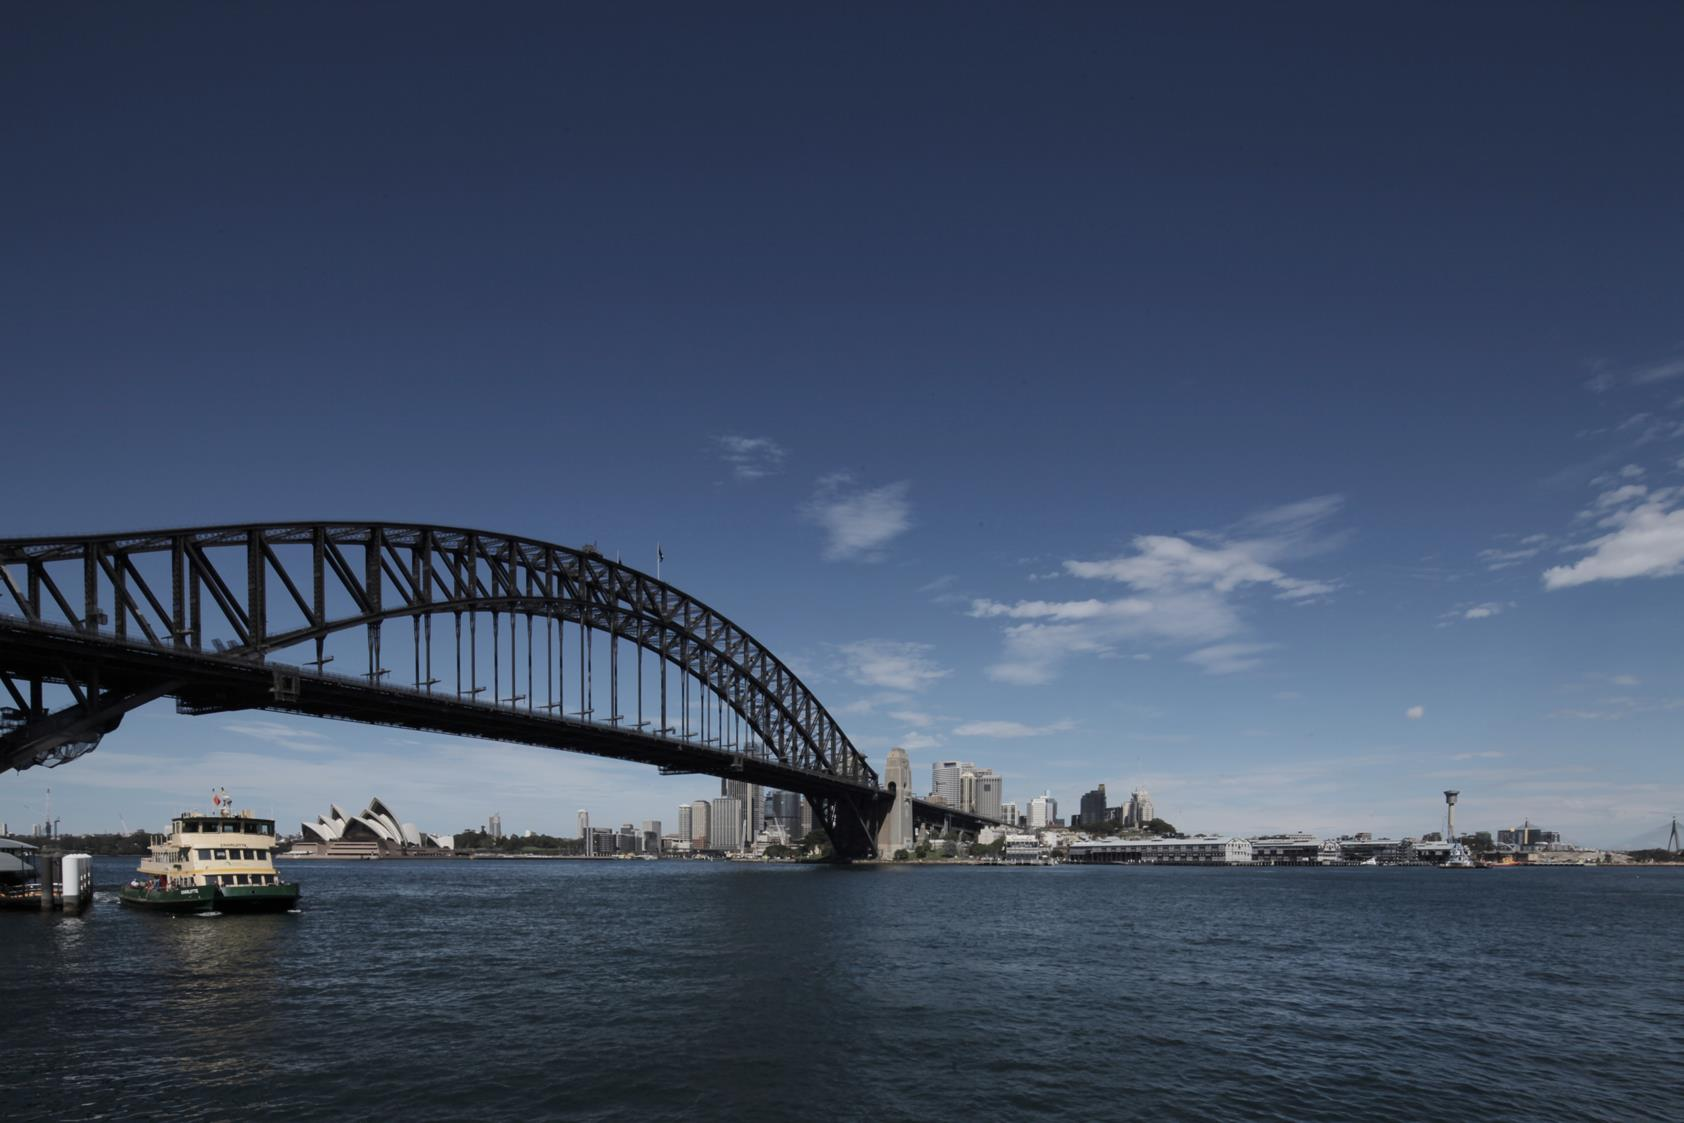 Syd-Harbour-Bridge-Wharf-6-7-location-shot